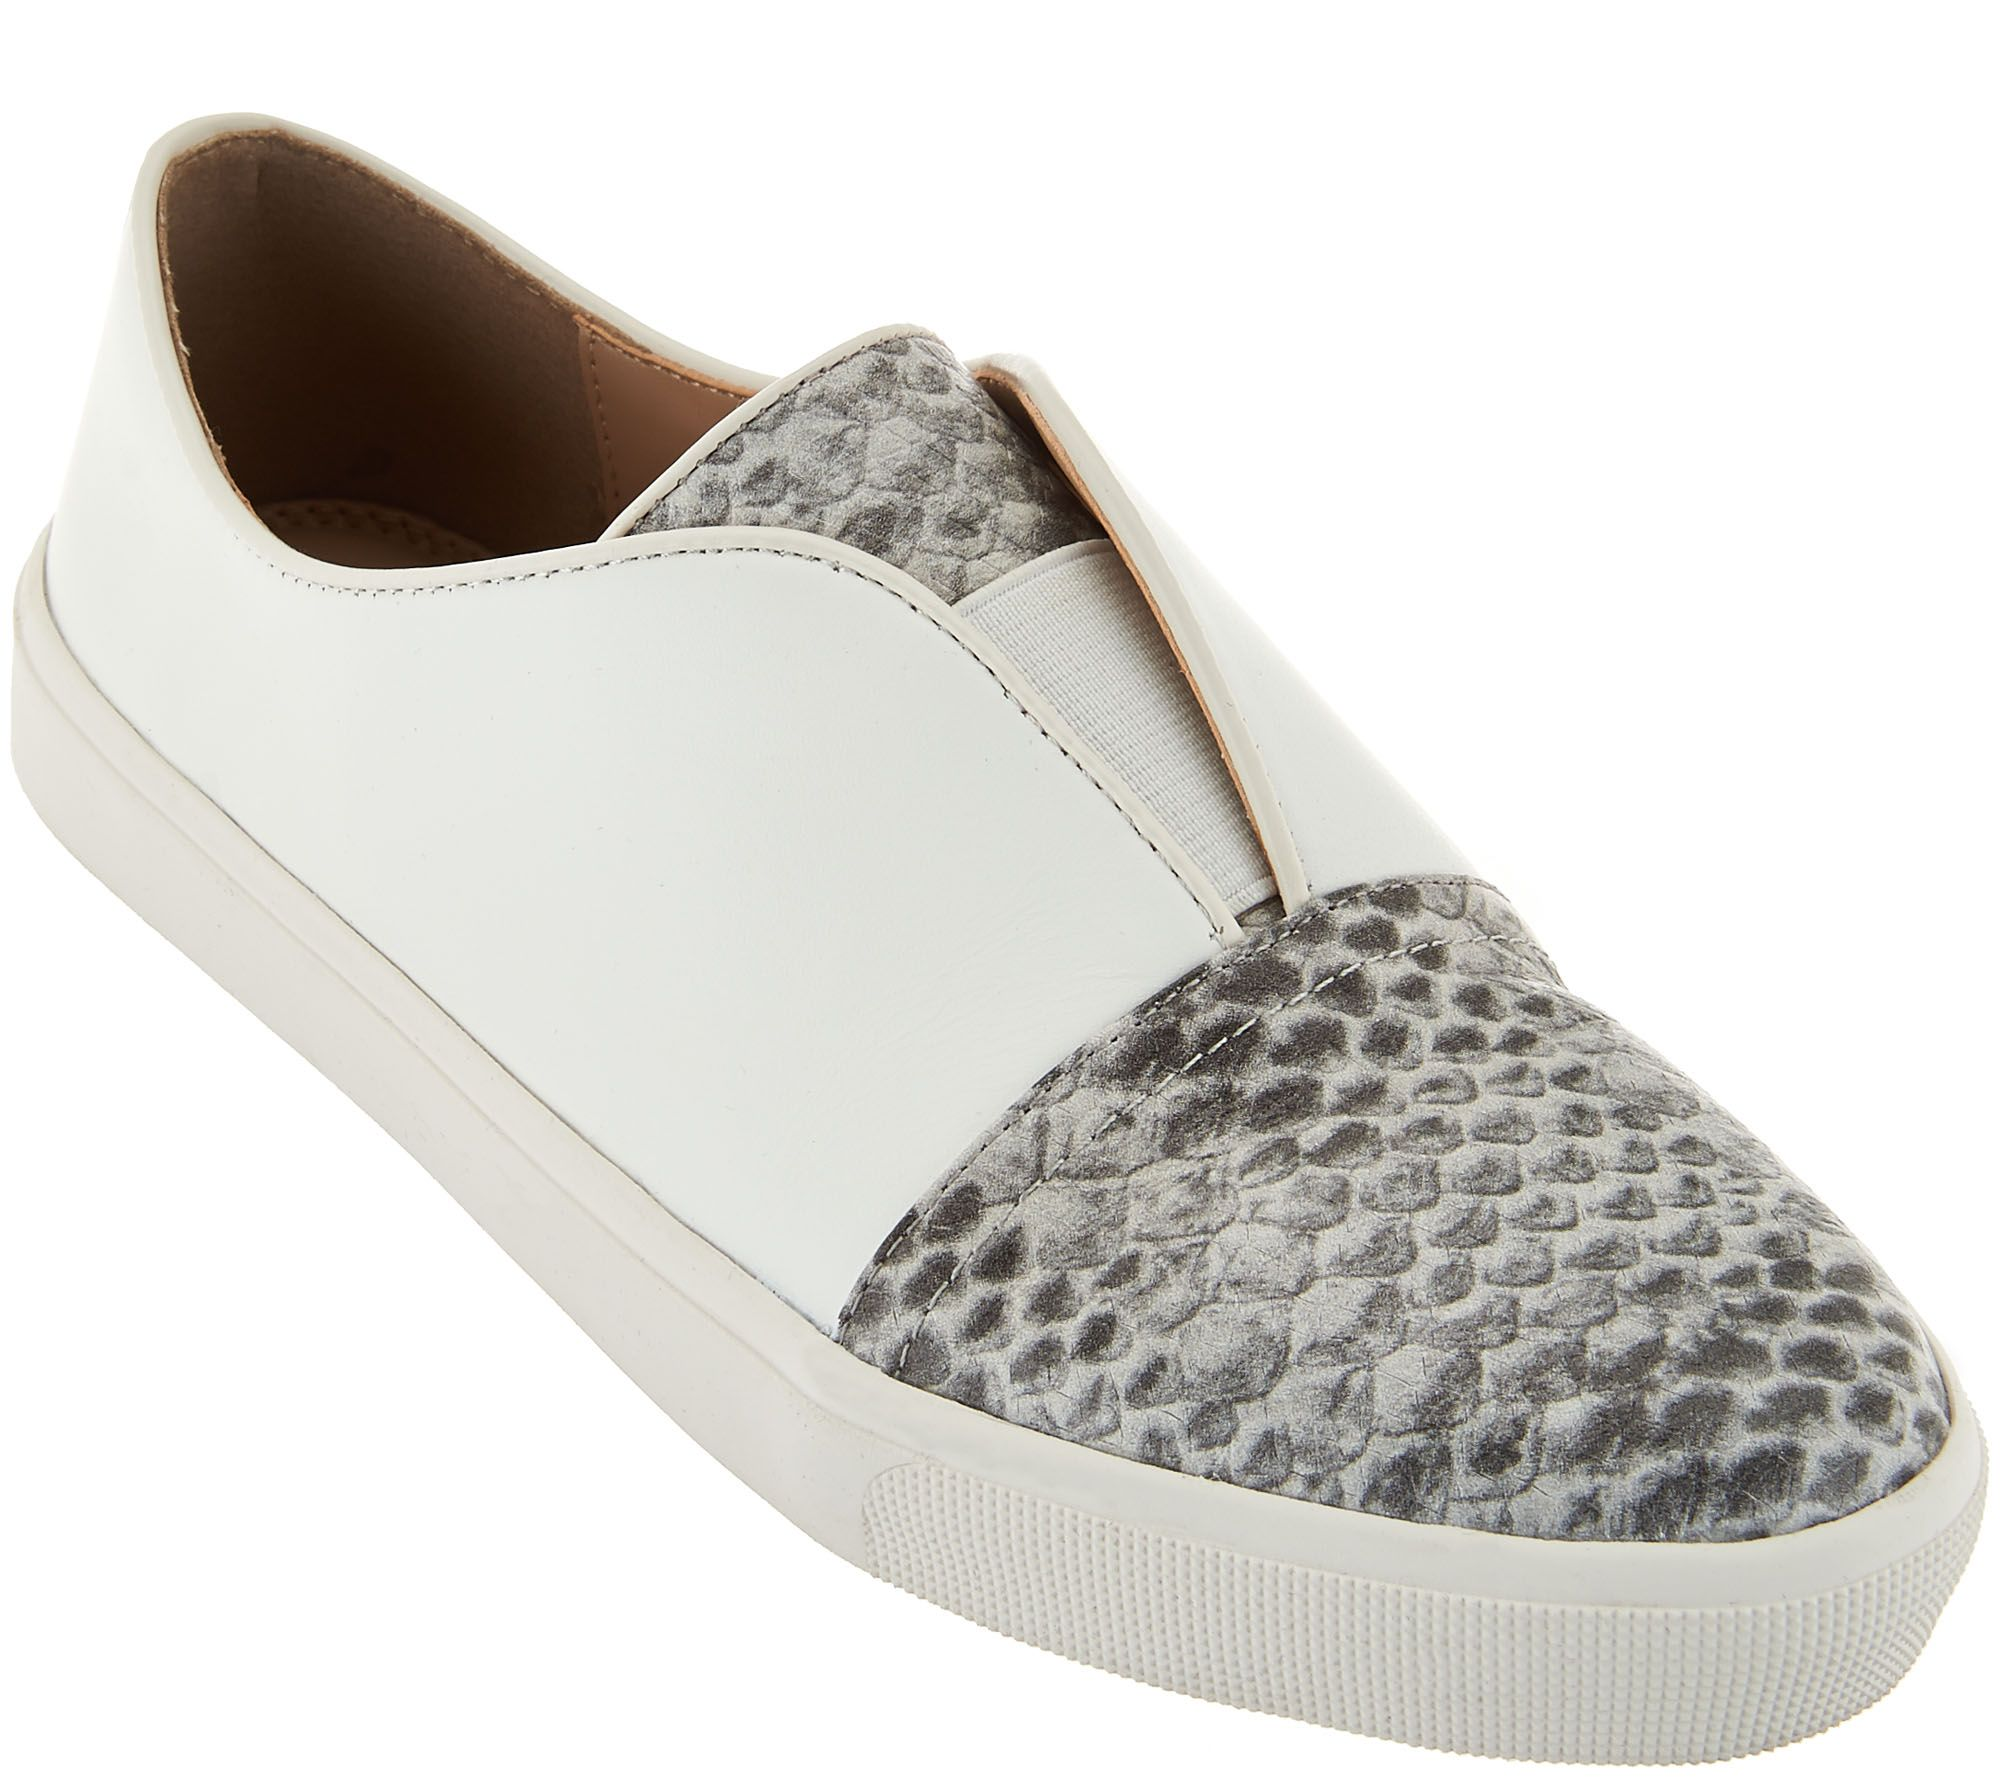 LOGO by Lori Goldstein Slip-on Sneakers where can i order quTsw8k